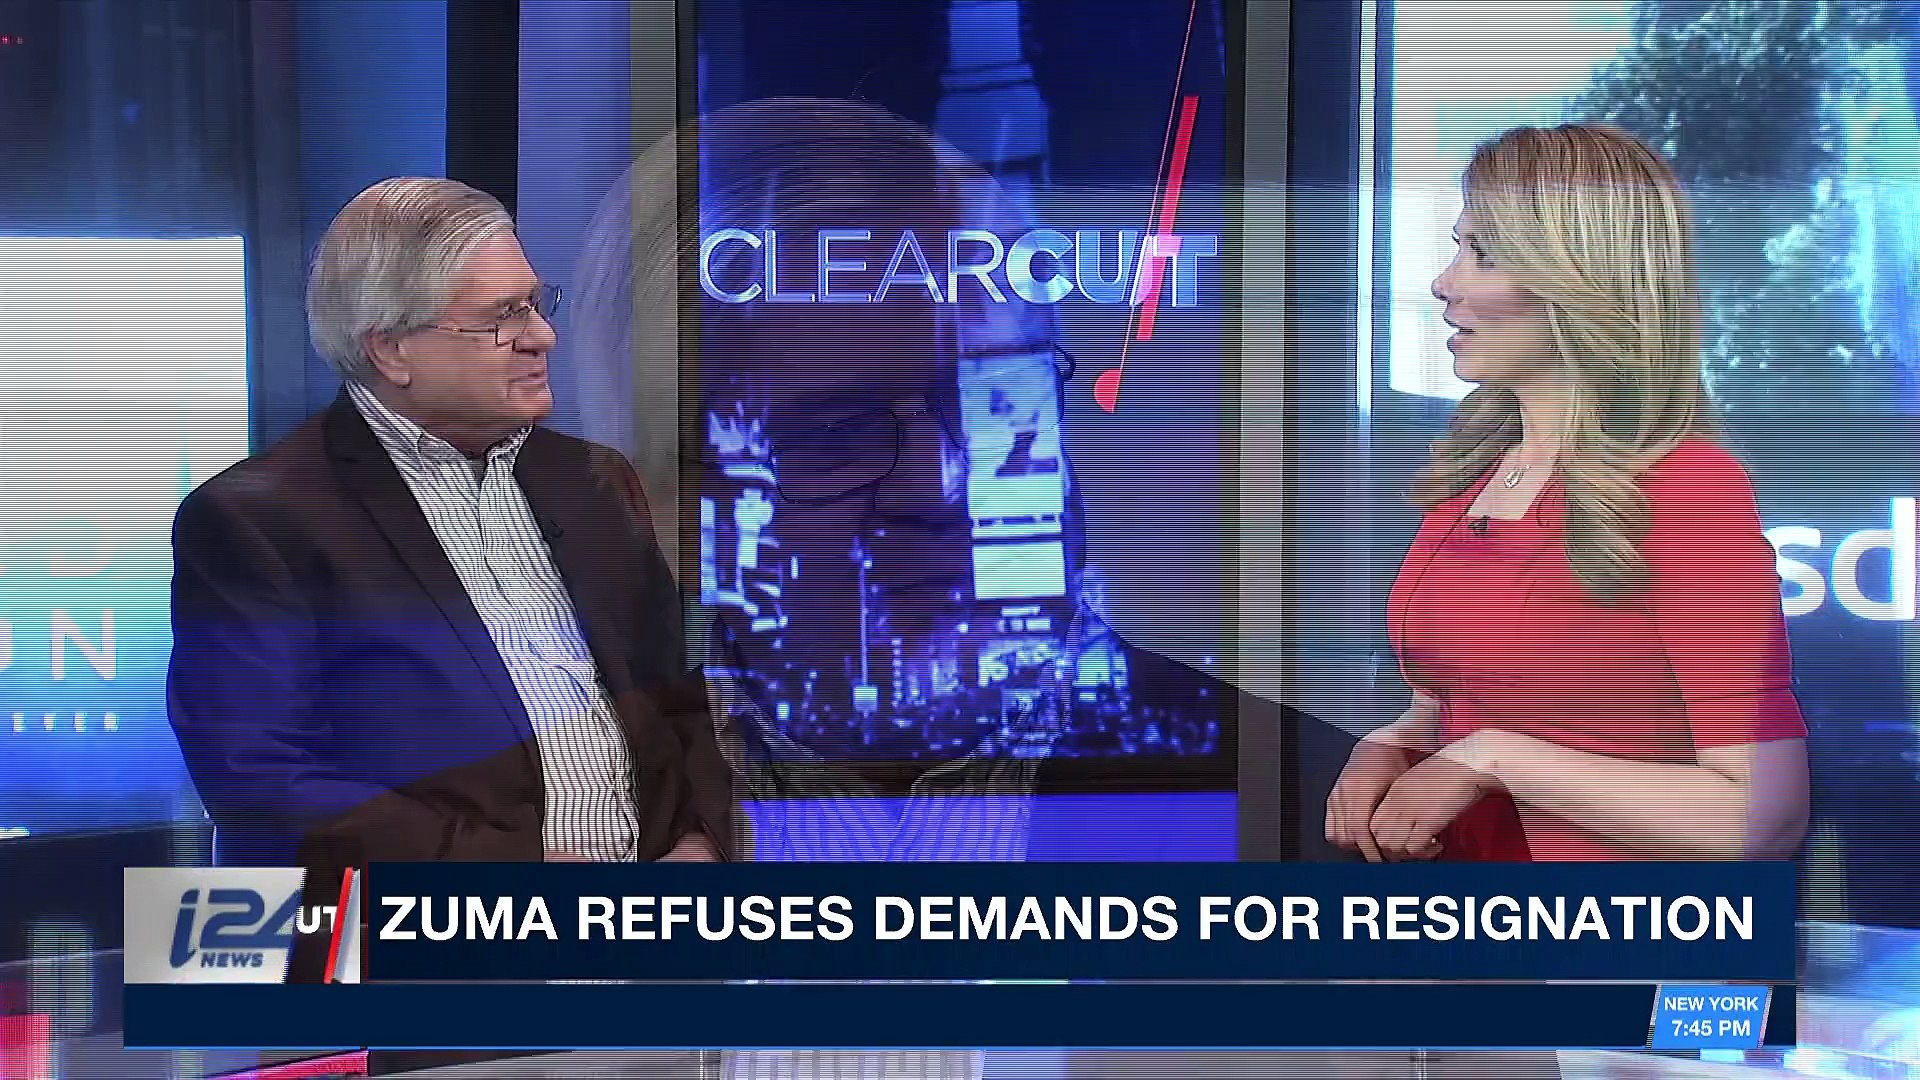 CLEARCUT   Political crisis in South Africa   Tuesday, February 13th 2018